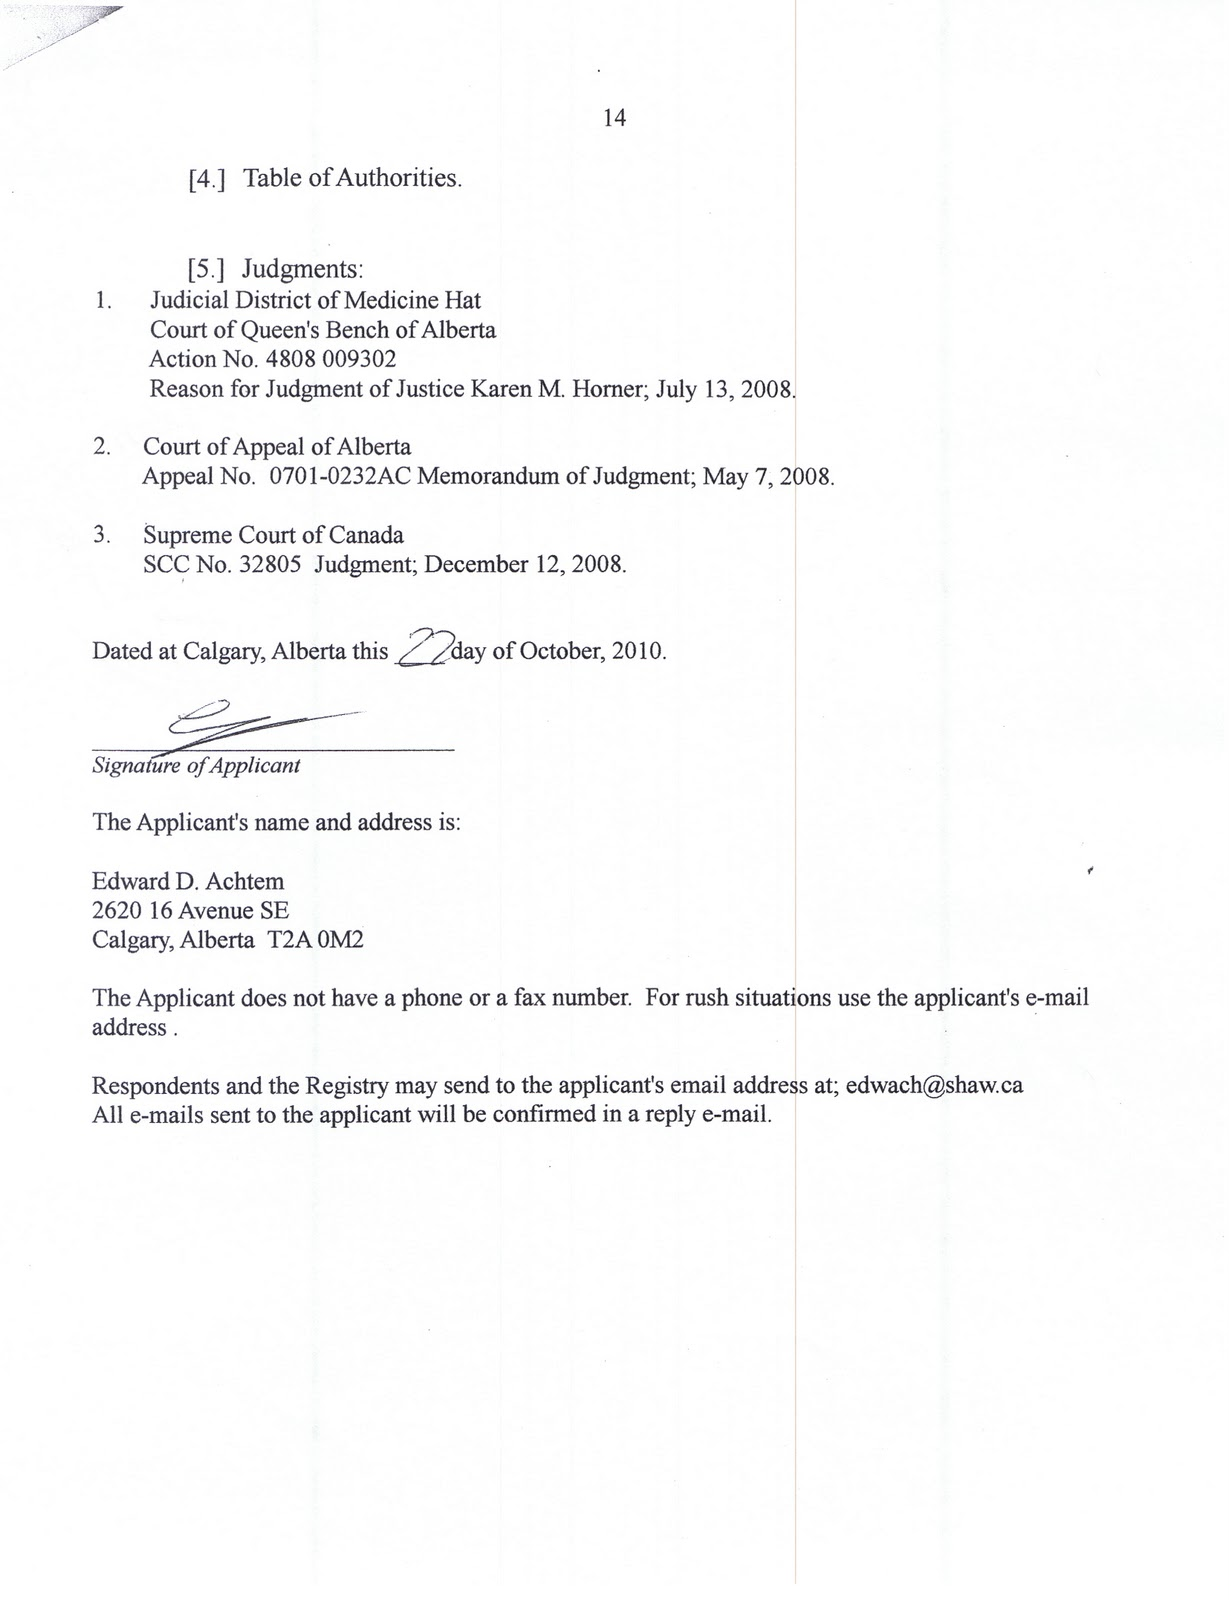 notice of application for judicial review